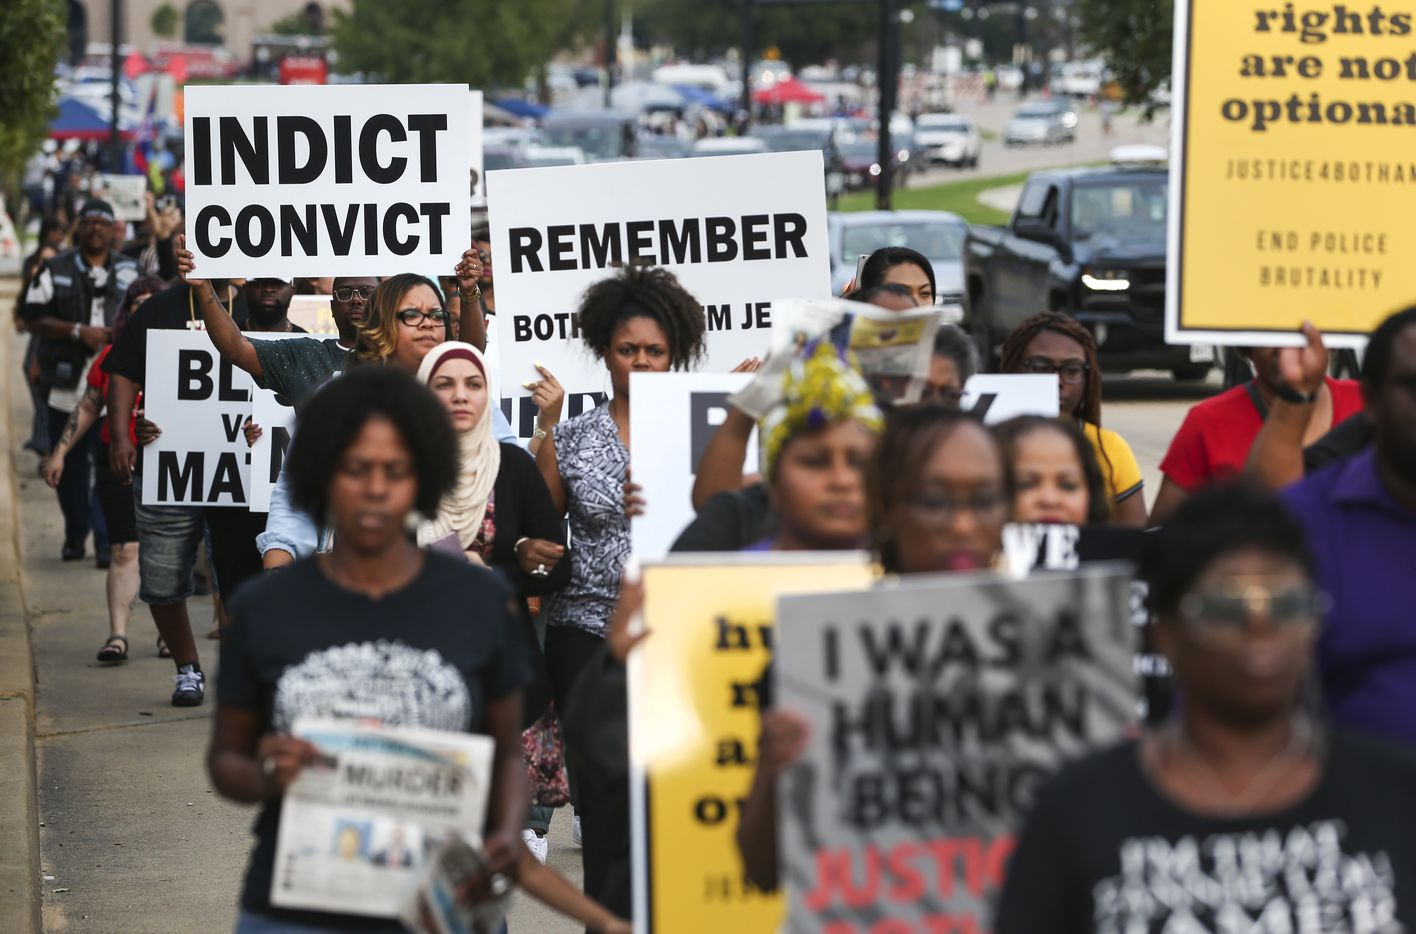 People march during a protest prior to the start of the Dallas Cowboys' game against the New York Giants on Sunday, Sept. 16, 2018 at AT&T Stadium in Arlington, Texas. The demonstration comes after Botham Jean Shem was shot in his home by Dallas police officer Amber Guyger.